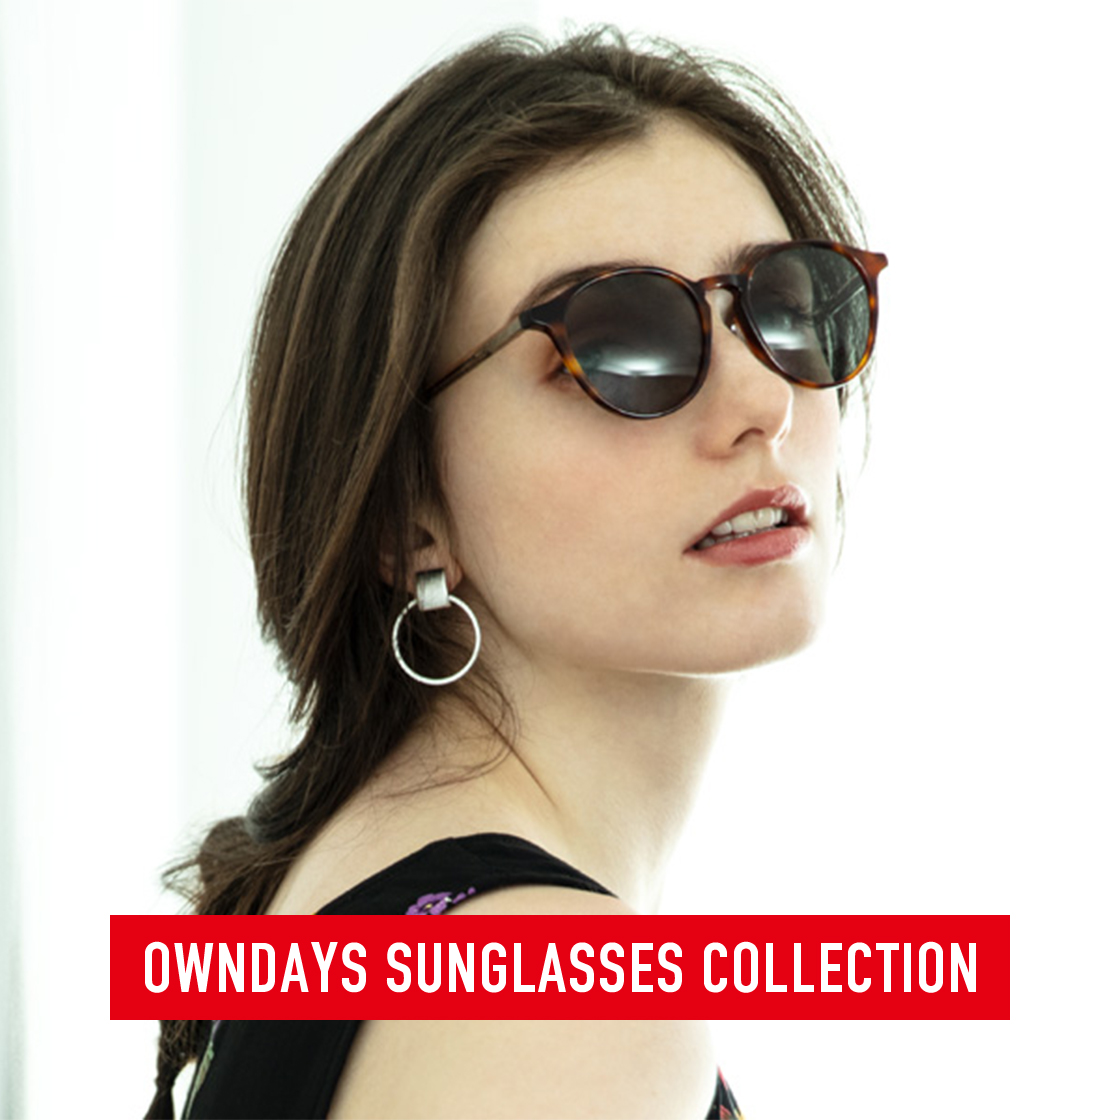 OWNDAYS SUNGLASSES COLLECTION 2019